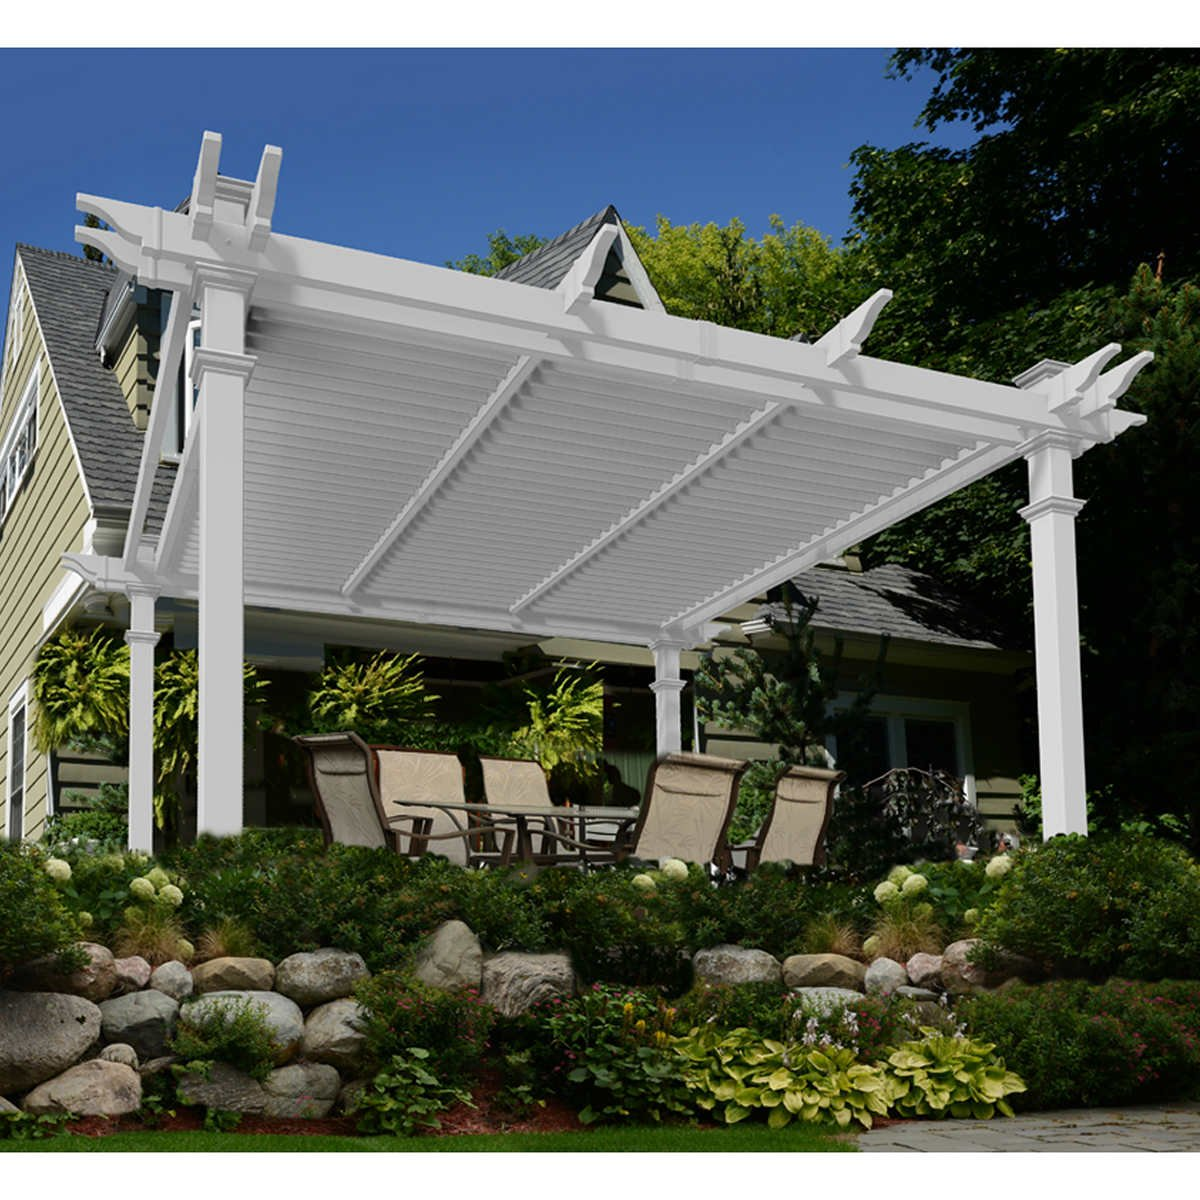 Amazing backyard gazebos that we can actually own for Terrace tubular design